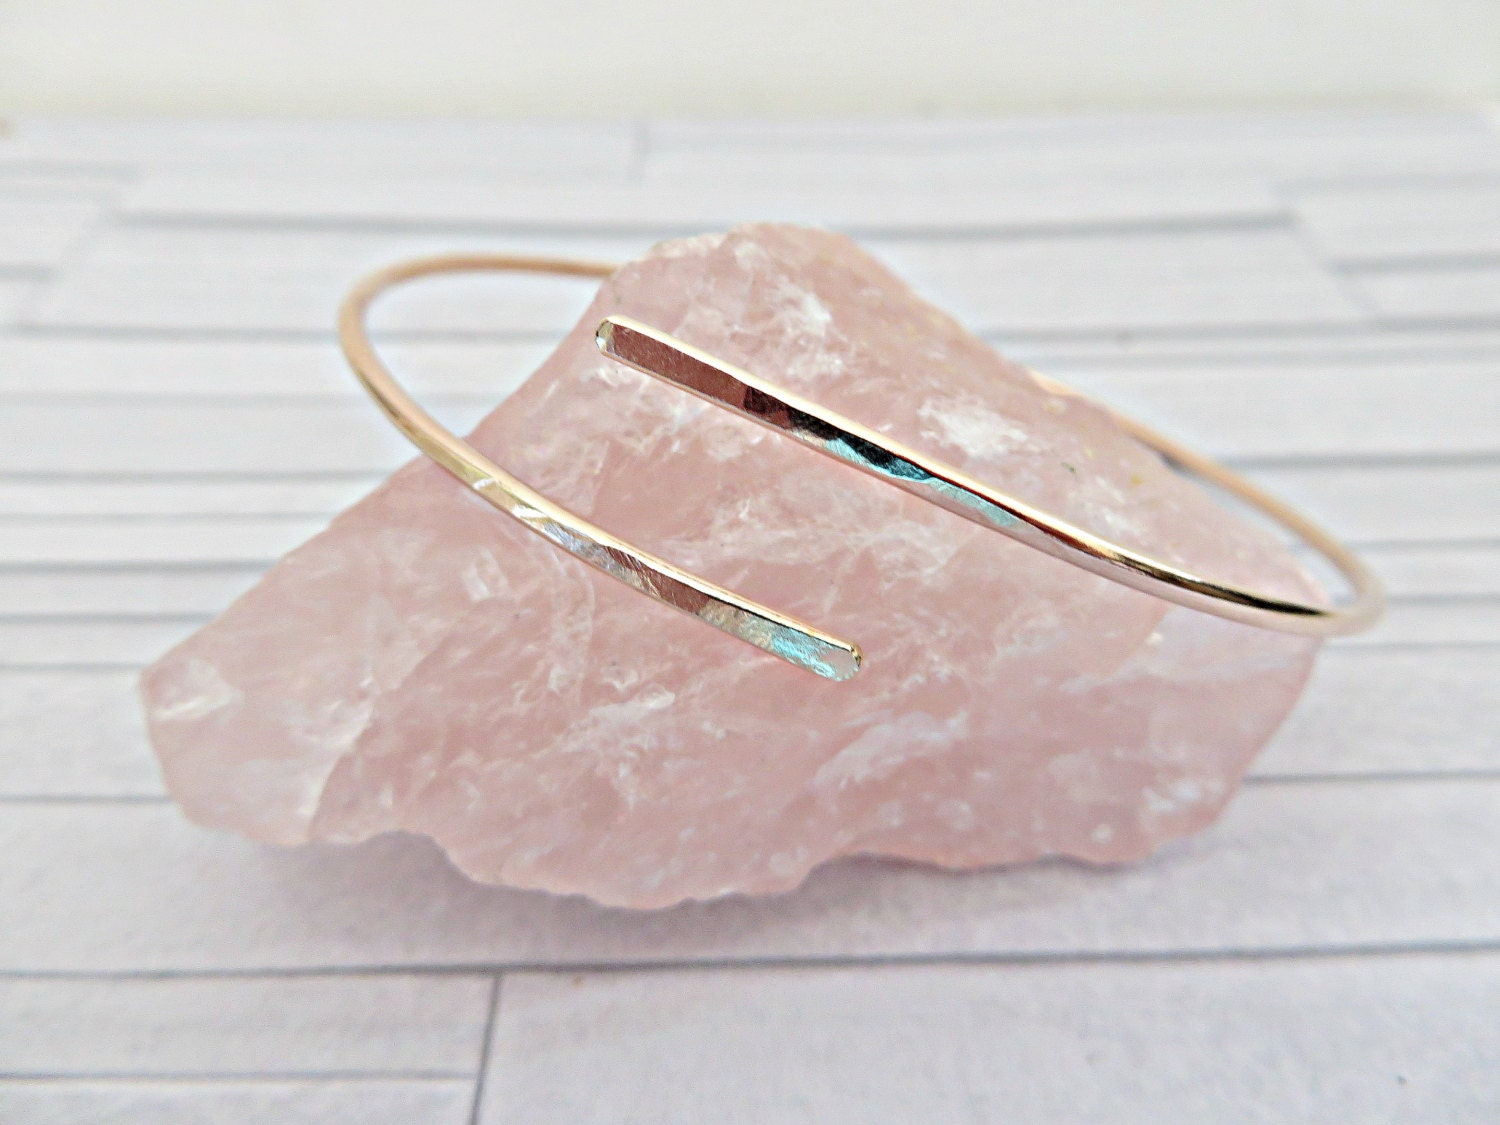 Rose gold filled cuff Rose gold bangle Rose gold bracelet 14k rose gold bangle Slim rose gold cuff Slim rose gold bangle Made in UK